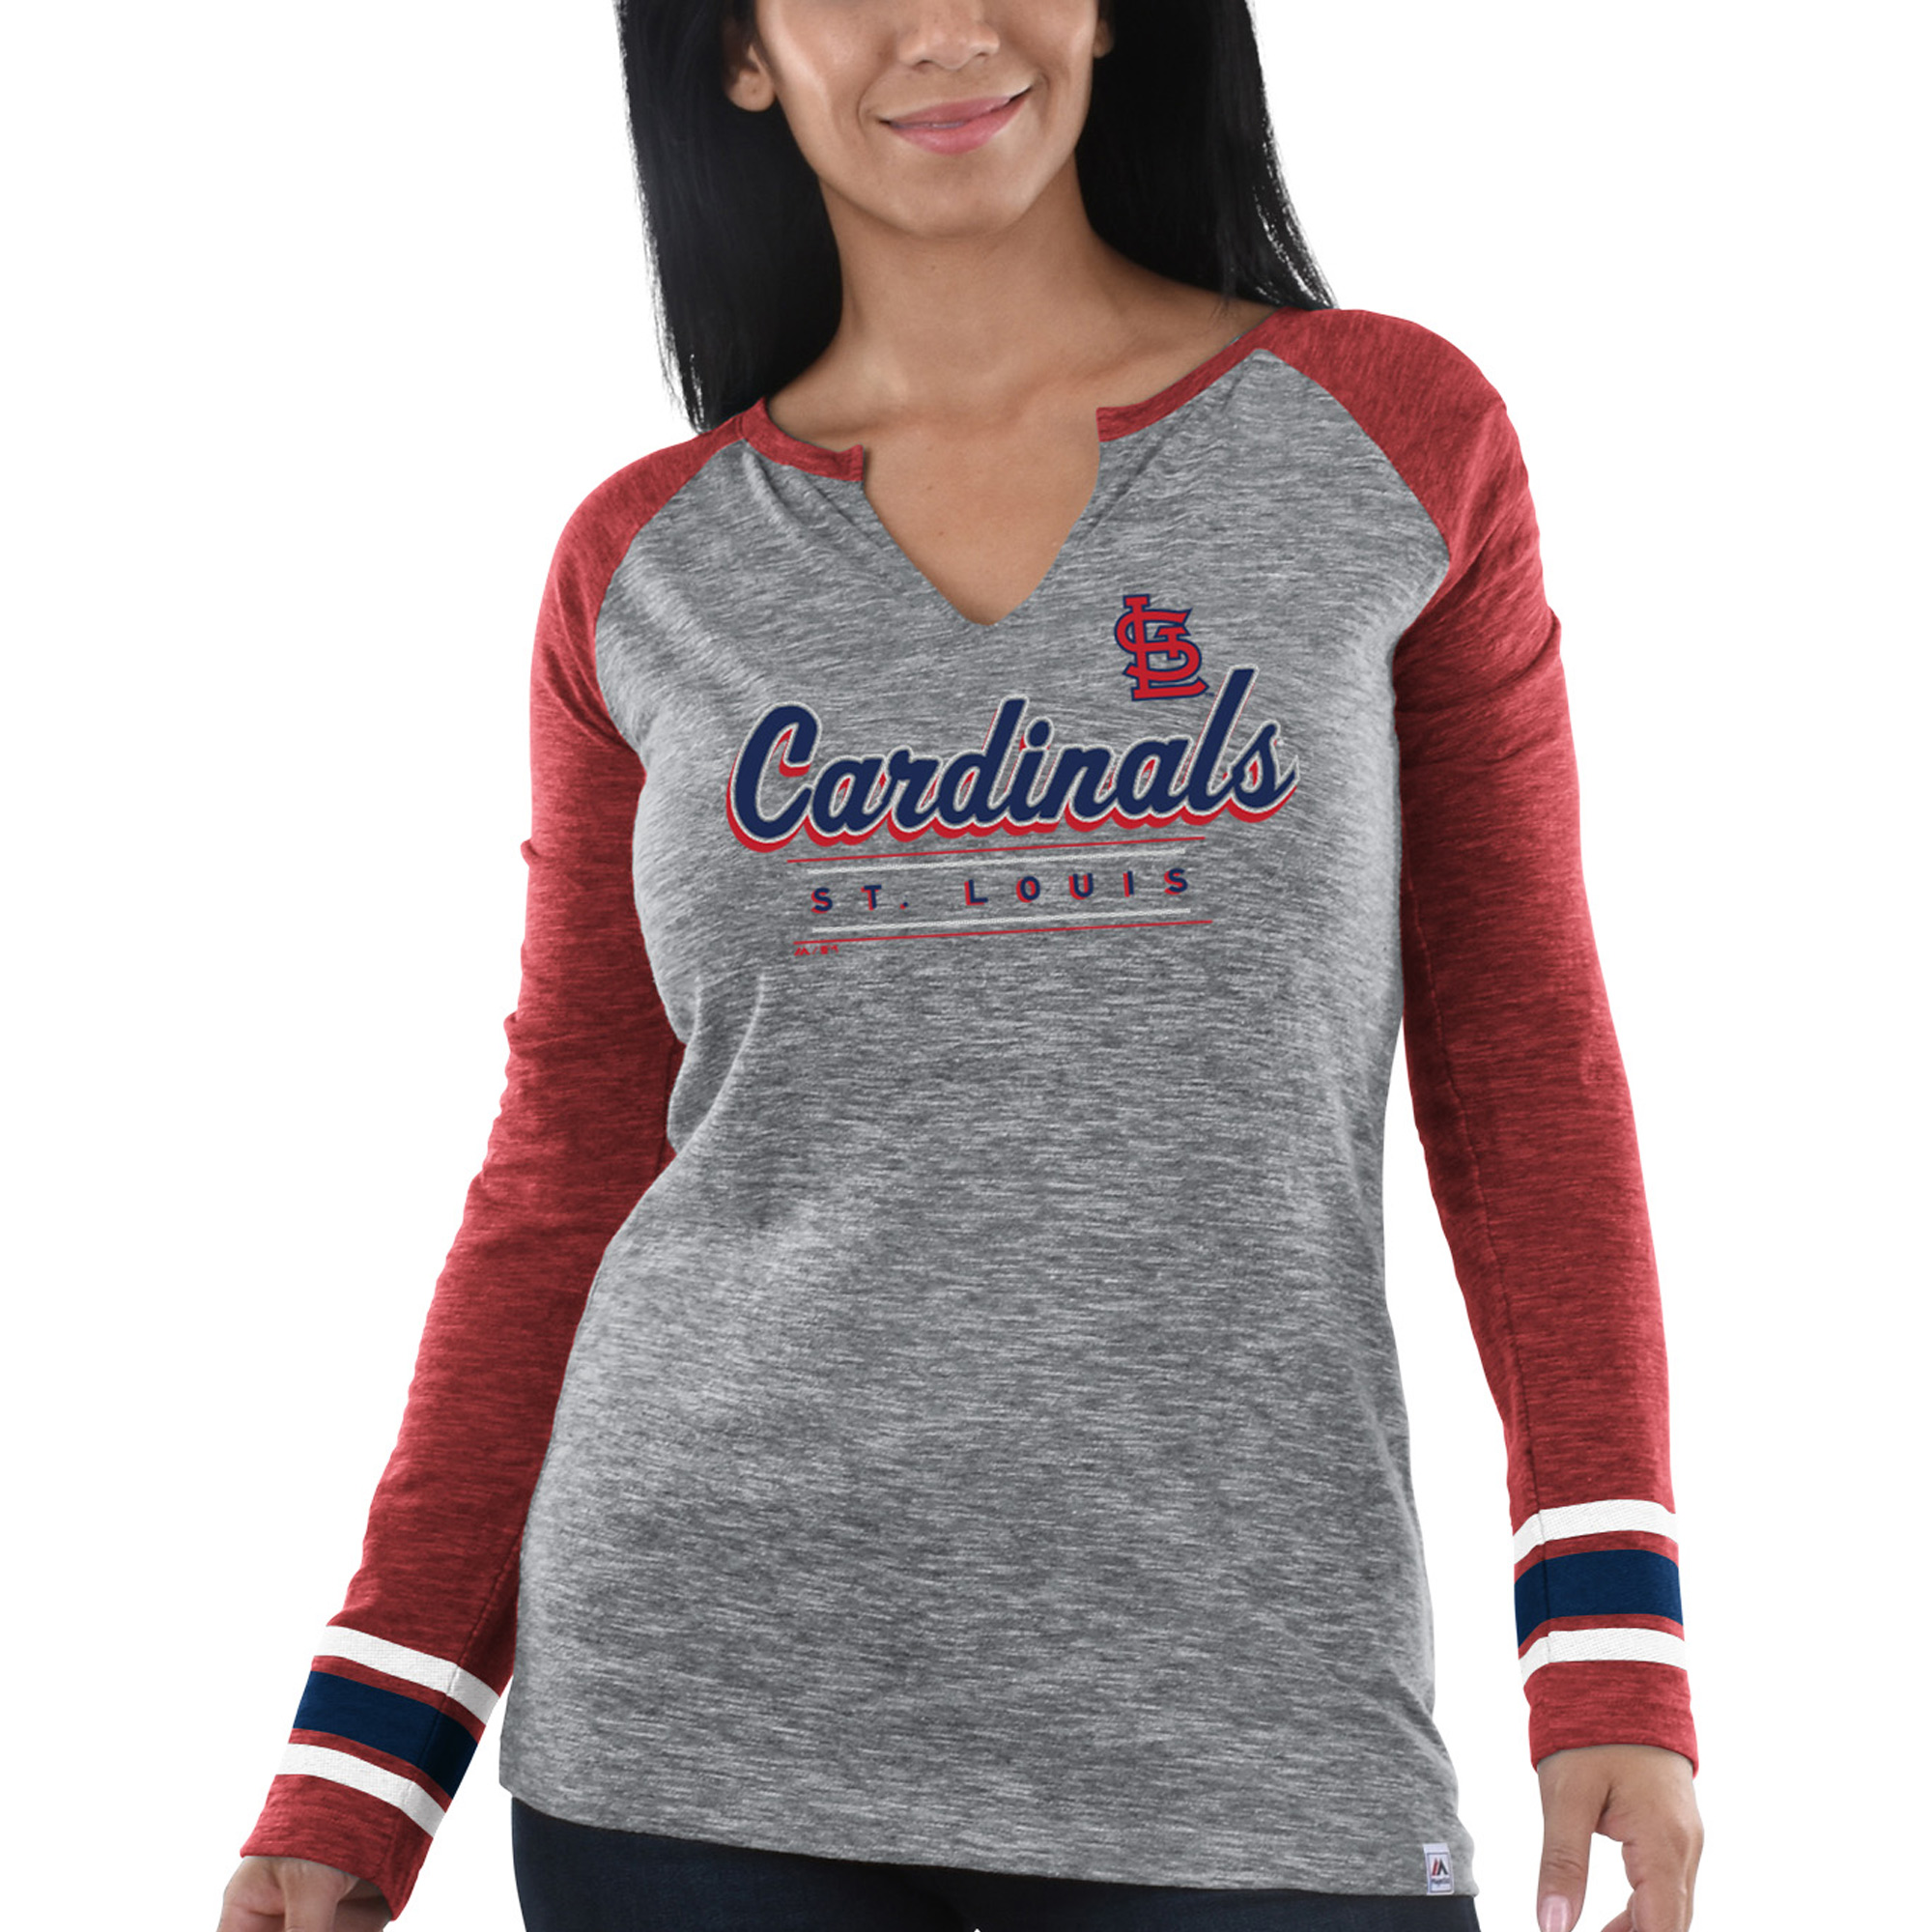 St. Louis Cardinals Majestic Women's Time's Running Out Long Sleeve T-Shirt Heathered Gray Red by MAJESTIC LSG